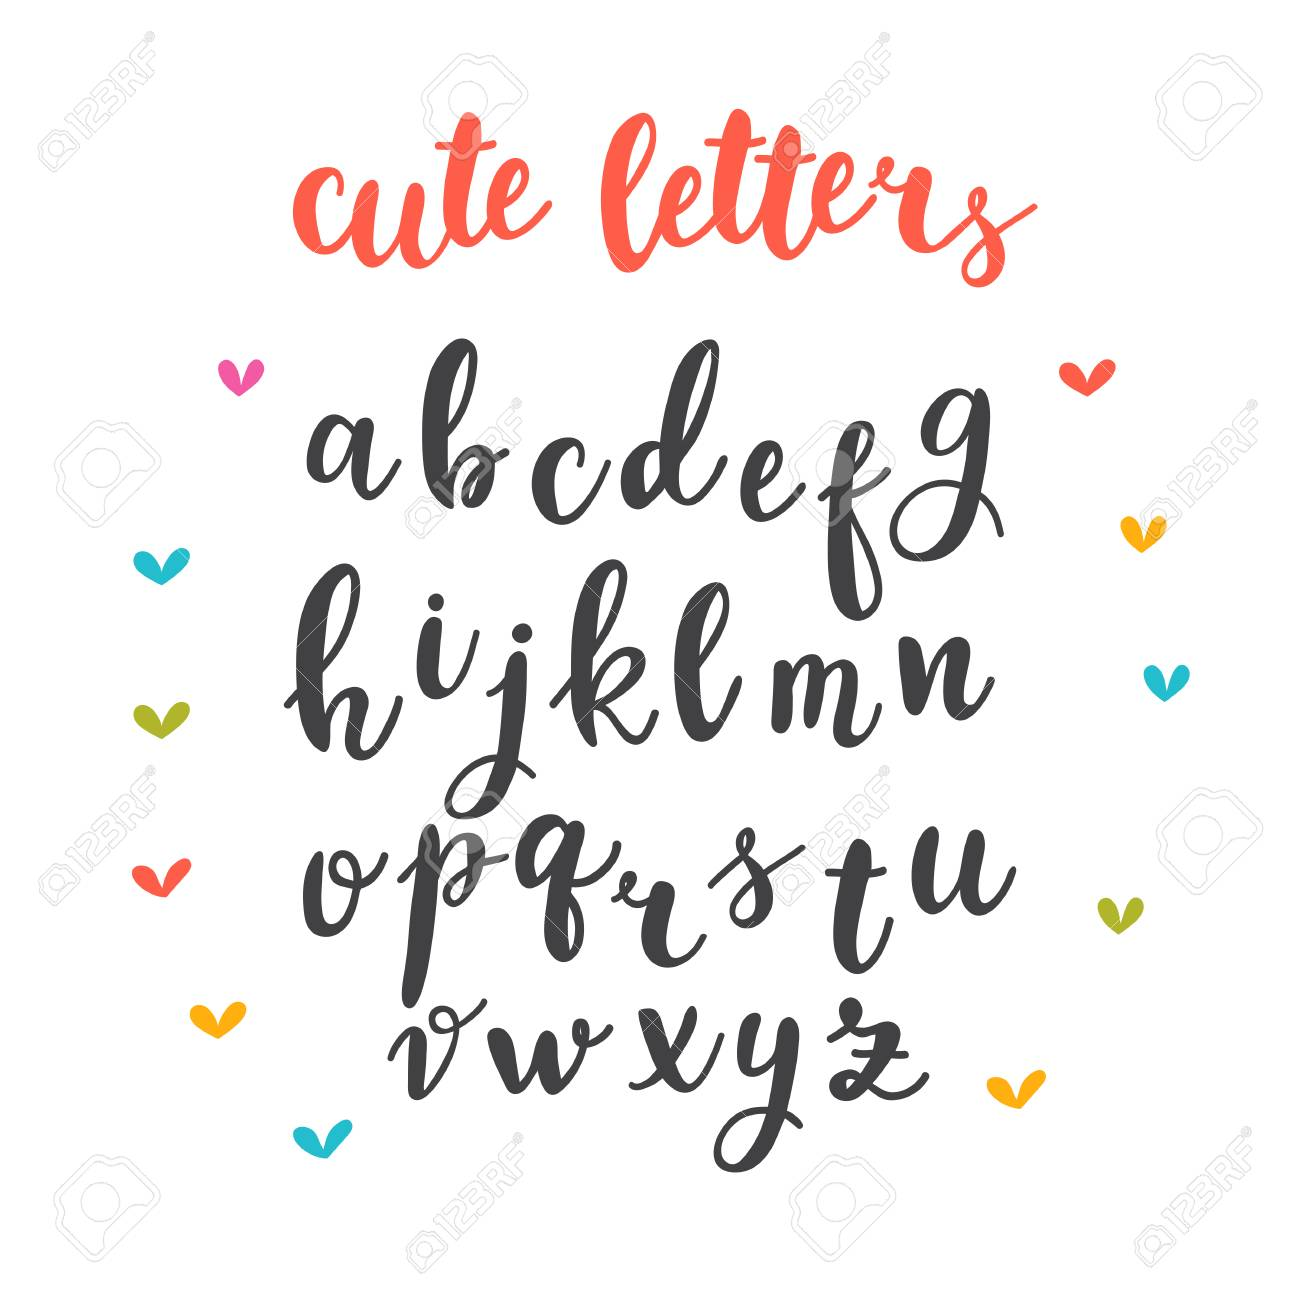 Cute Letters Hand Drawn Calligraphic Font Lettering Alphabet Vector Illustration Stock